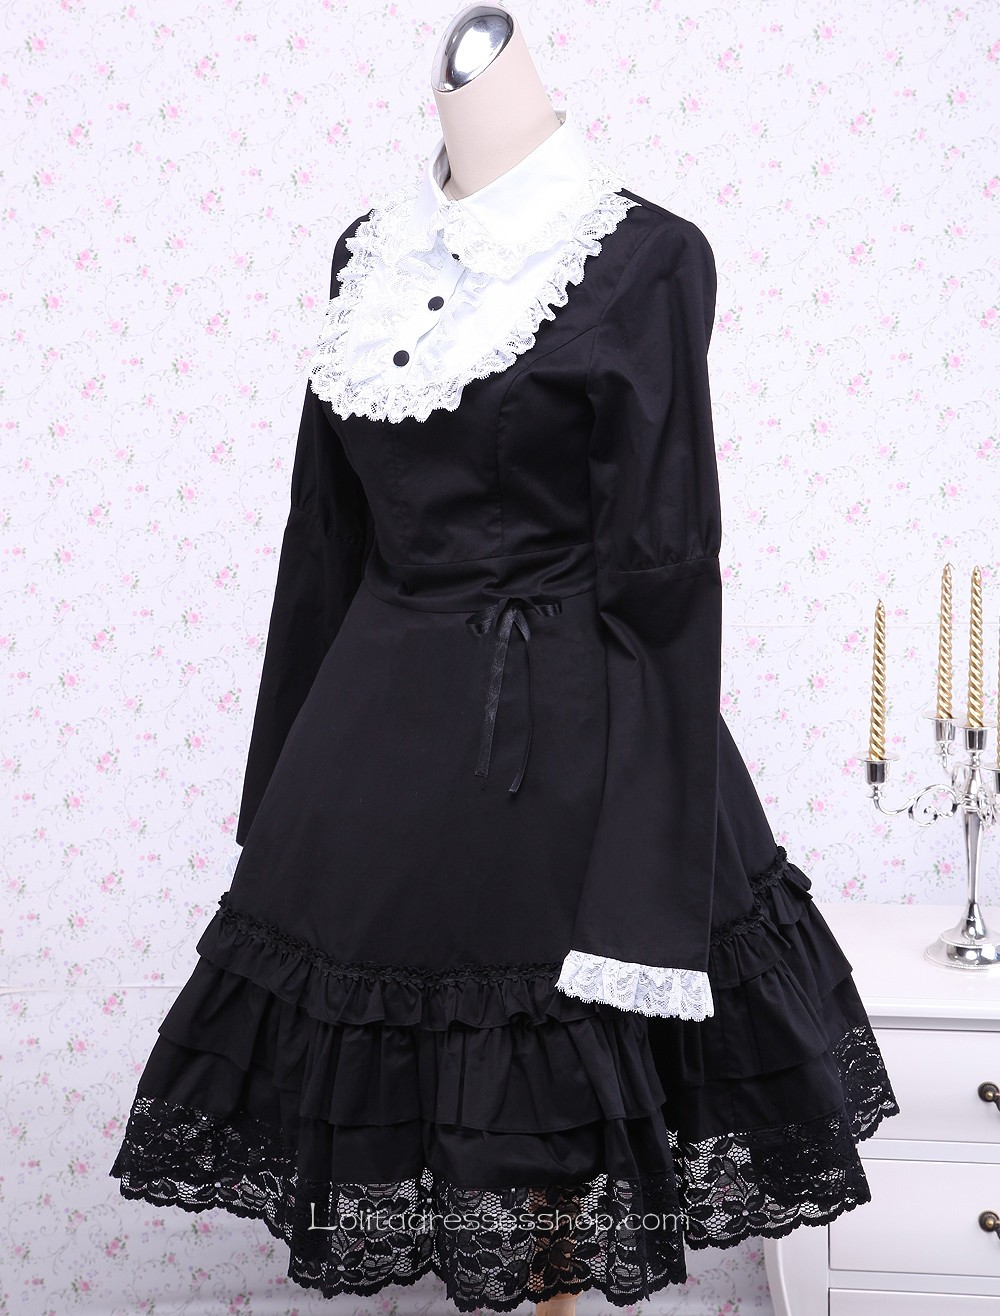 Black Cotton Lace Trim Long Sleeves Bow Gothic Lolita Dress